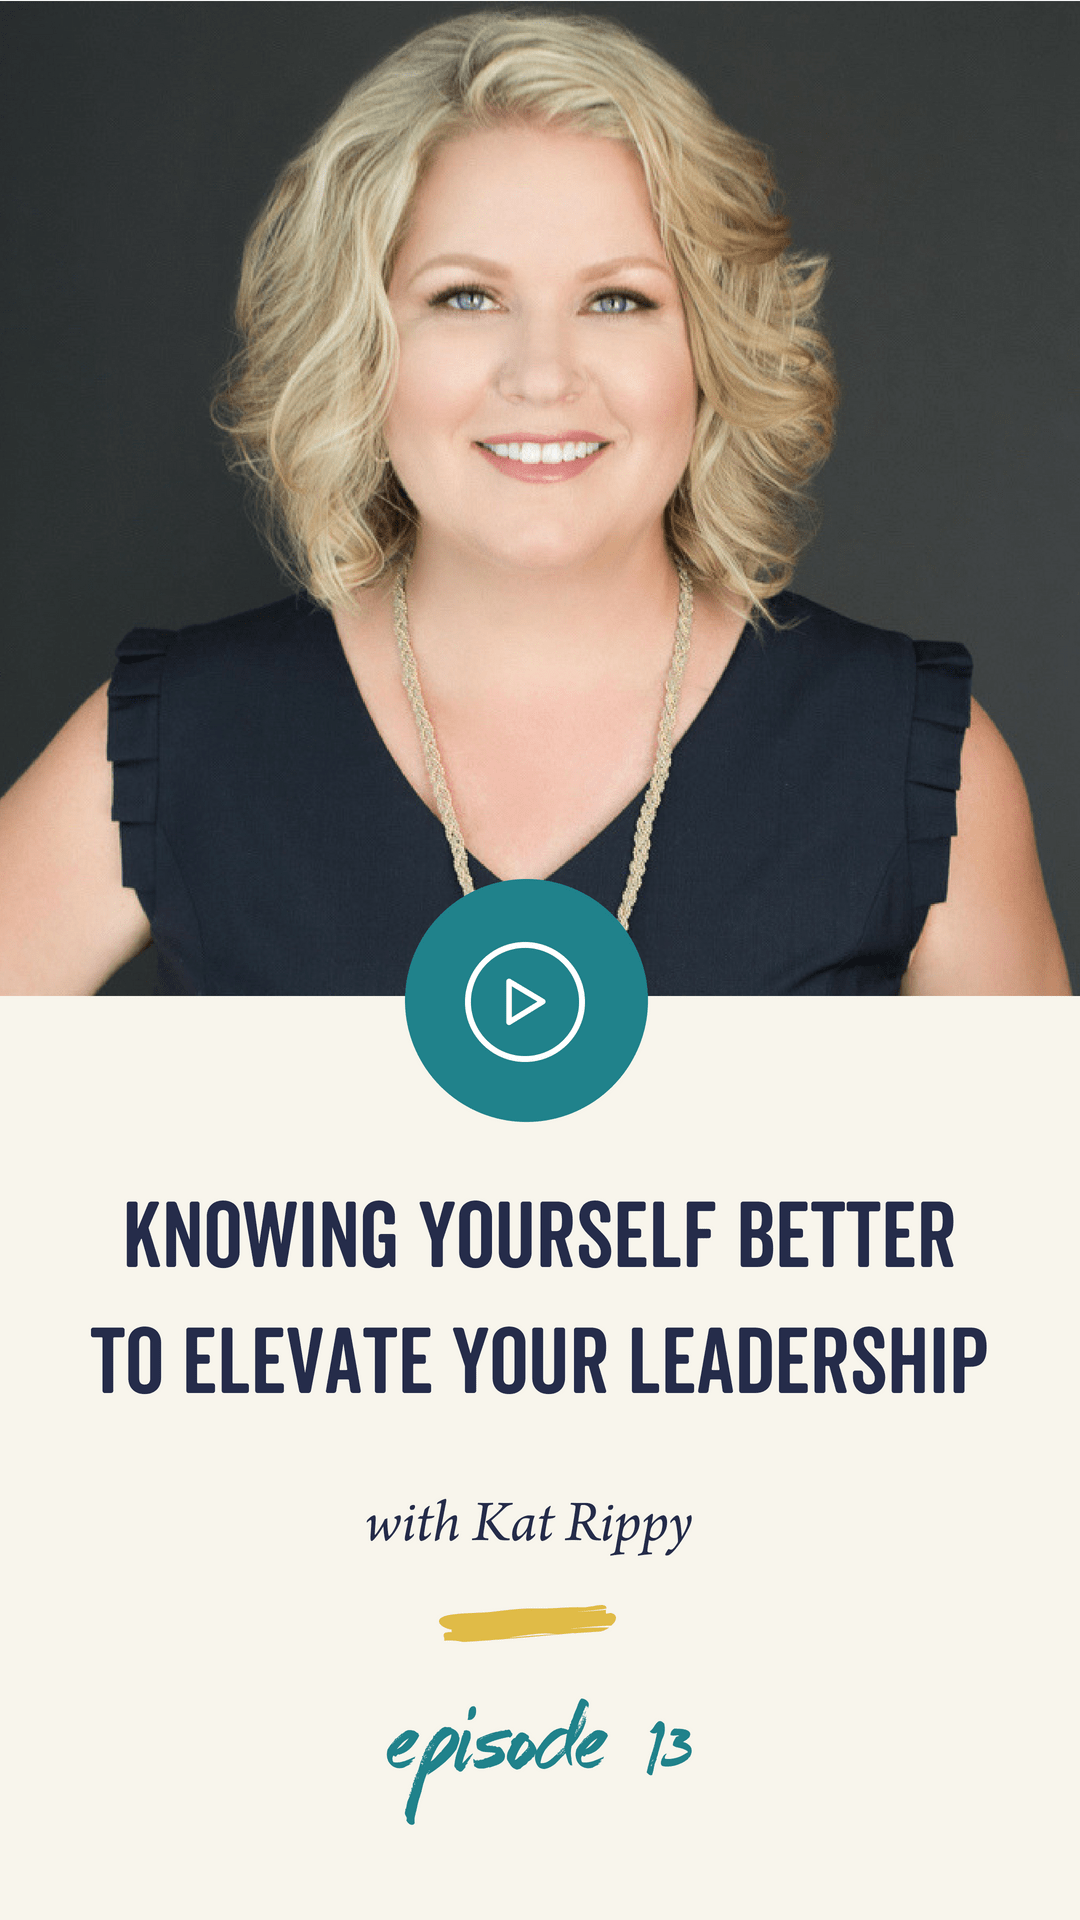 Episode 13: Knowing Yourself Better to Elevate Your Leadership